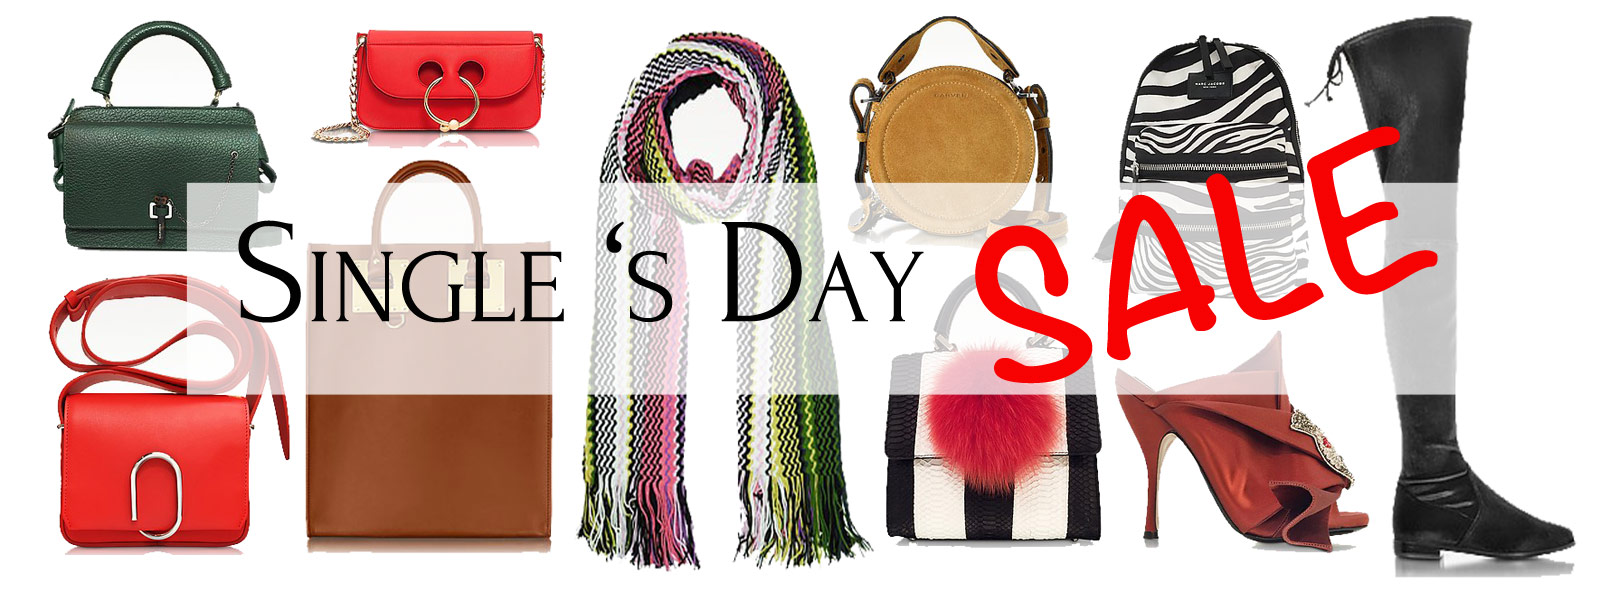 single-day-sale-top